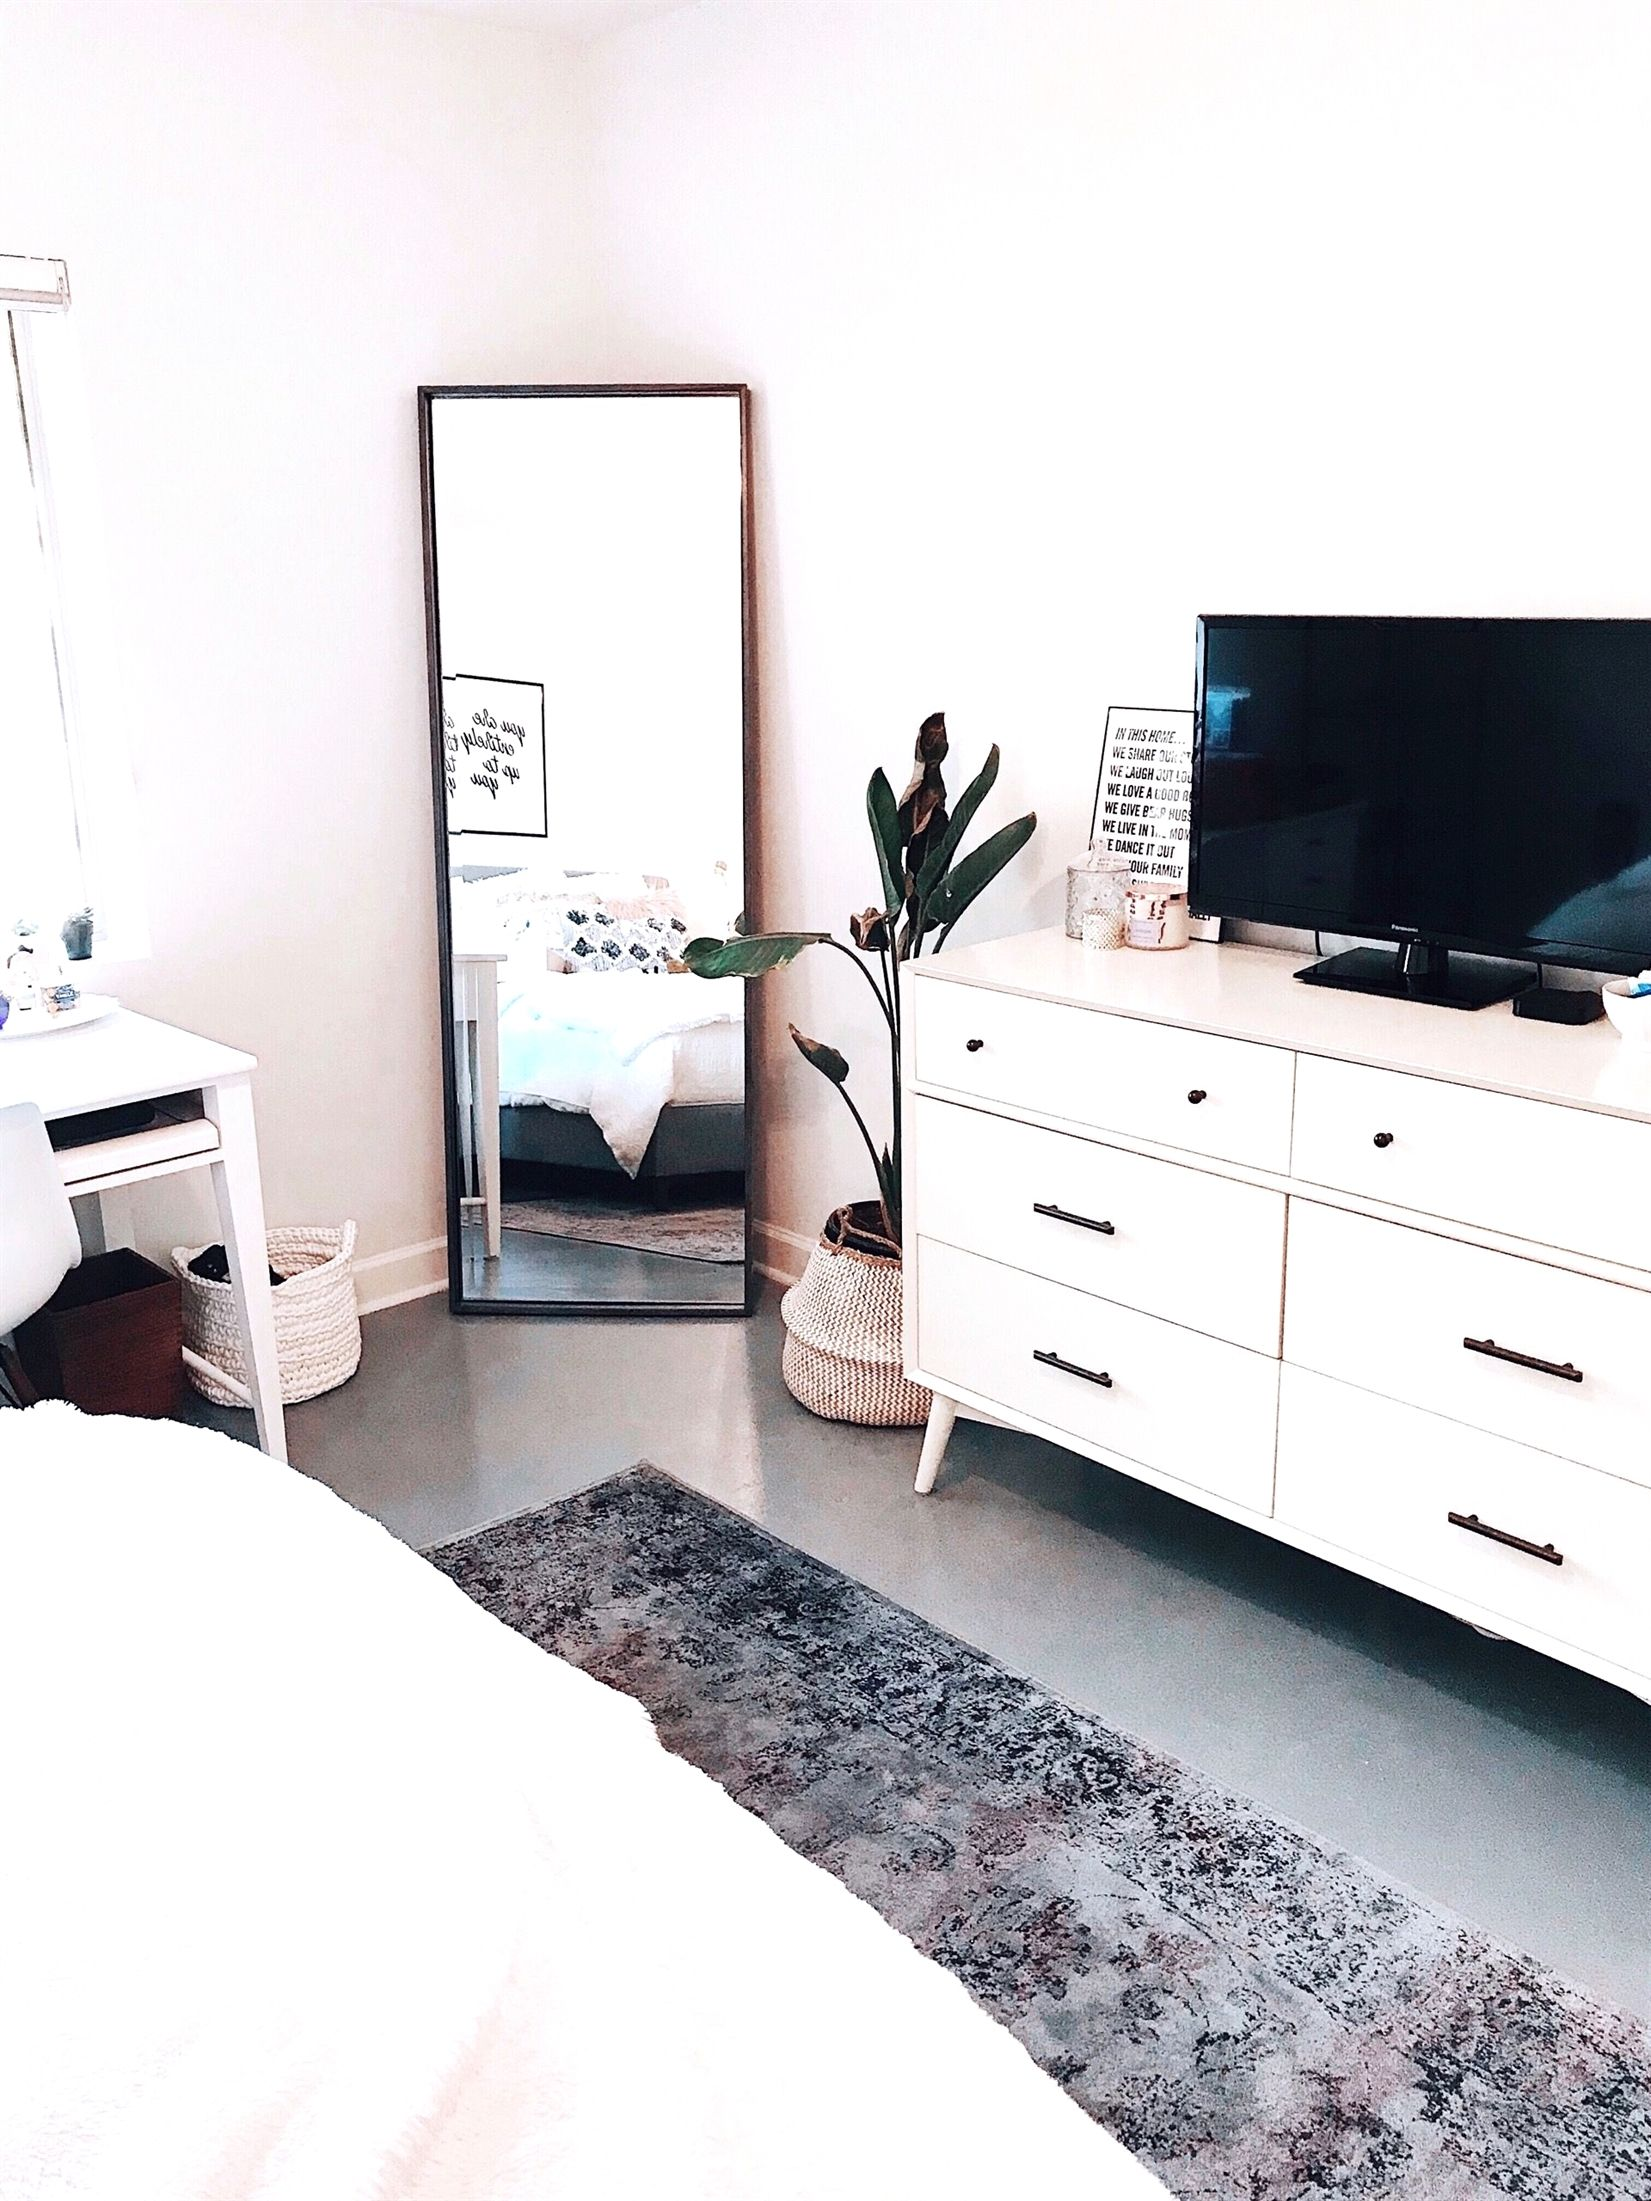 Clean aesthetic bedroom | @blairewilson fresh, bedroom, white, minimal, plant, room makeover, full length mirror, area rug, tv, aesthetic, home, inspo, inspiration, goals, style, cozy, loft style, blaire wilson room, blaire wilson bedroom, all white, boho, modern, blogger, organized, tidy, urban outfitters, living spaces, home good, amazon, #bedroom ideas #bedroomgoals